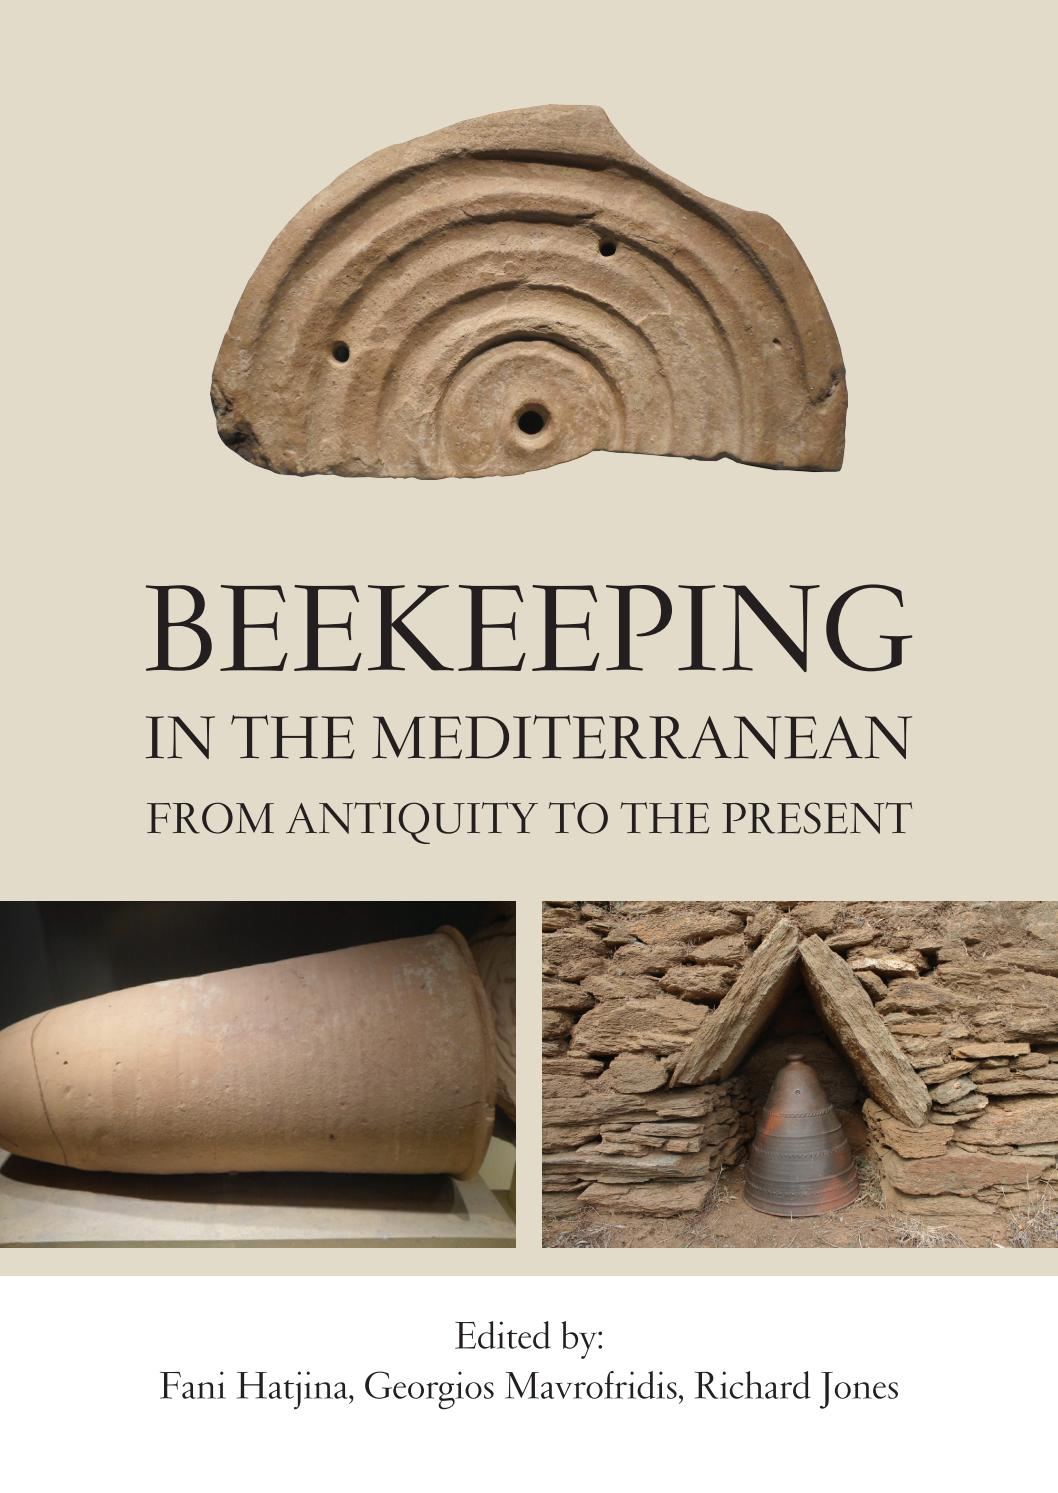 Beekeeping in the Mediterranean- From Antiquity to the